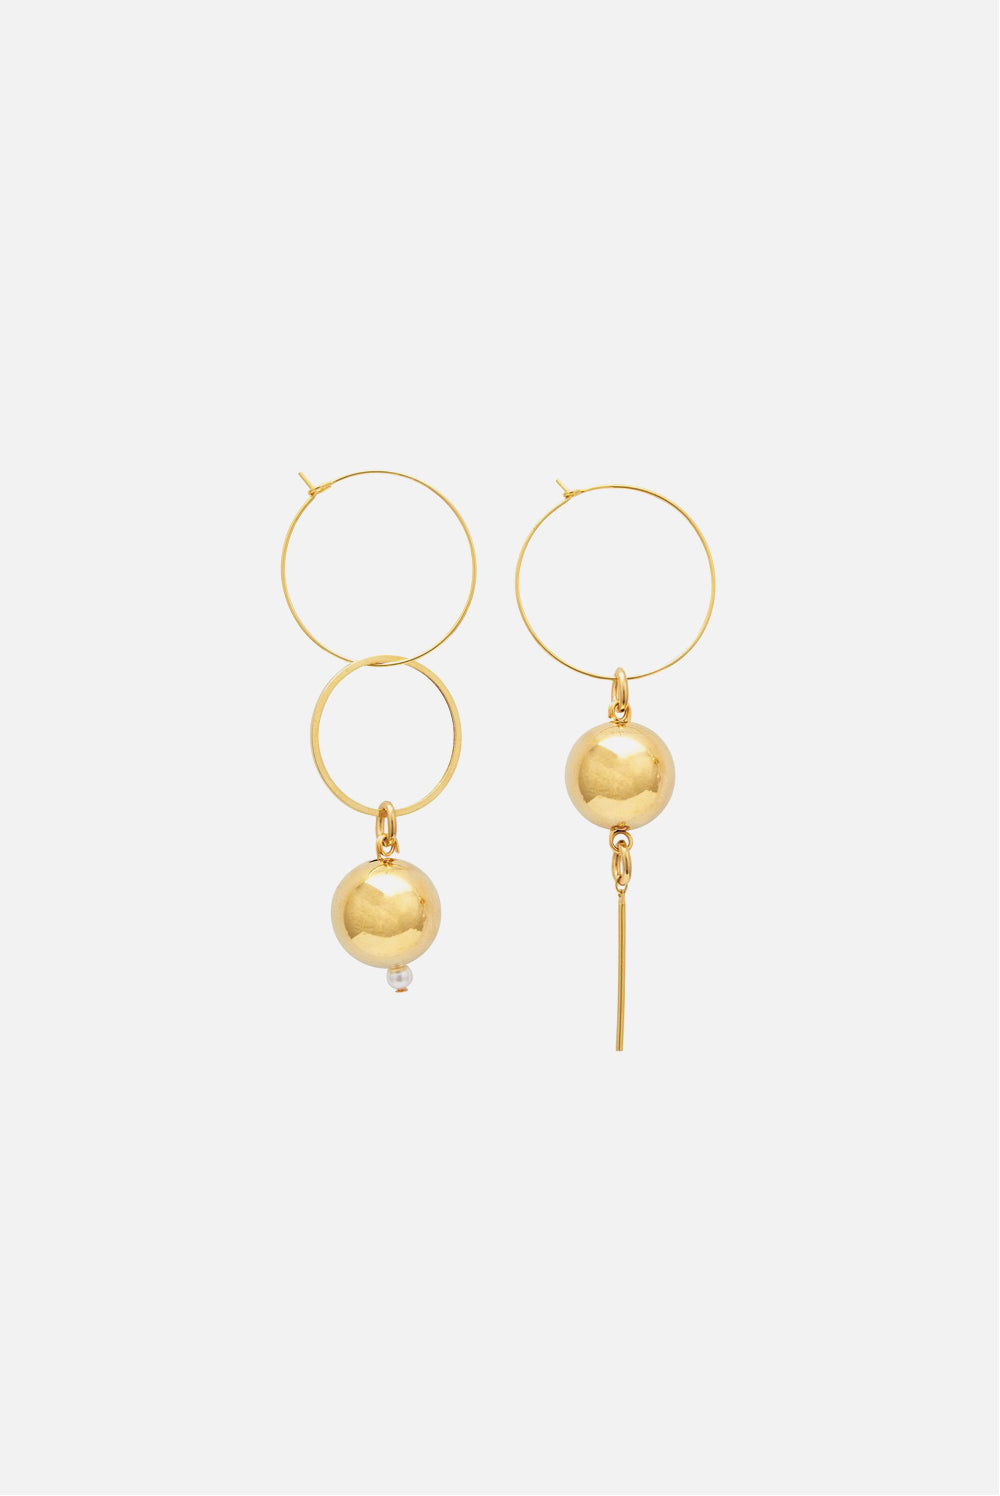 MOUNSER SOLAR MINI HOOPS EARRINGS